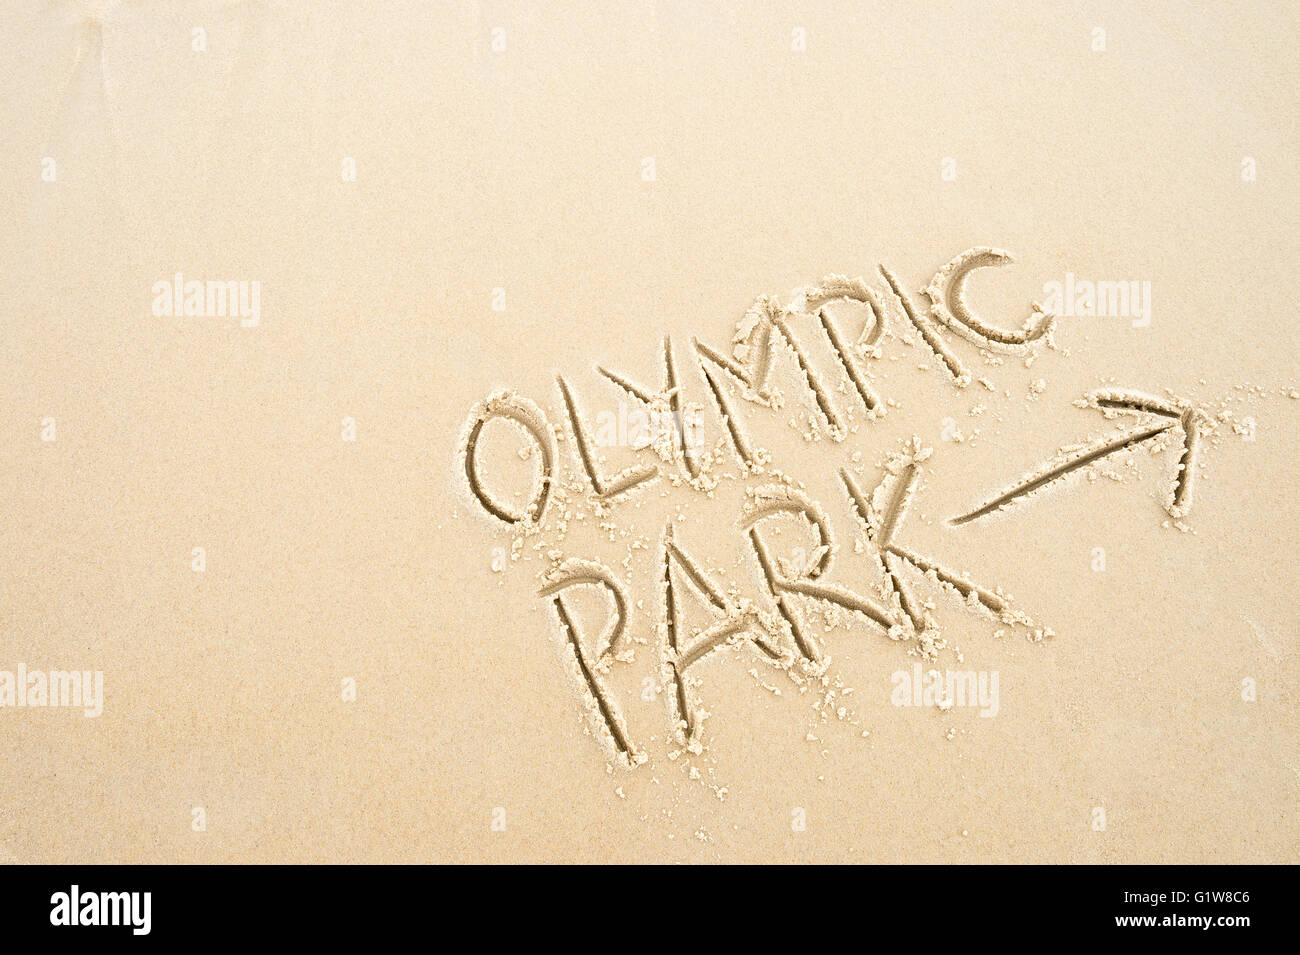 RIO DE JANEIRO - NOVEMBER 10, 2015: Handwritten message with arrow pointing the way to Olympic Park written in smooth - Stock Image